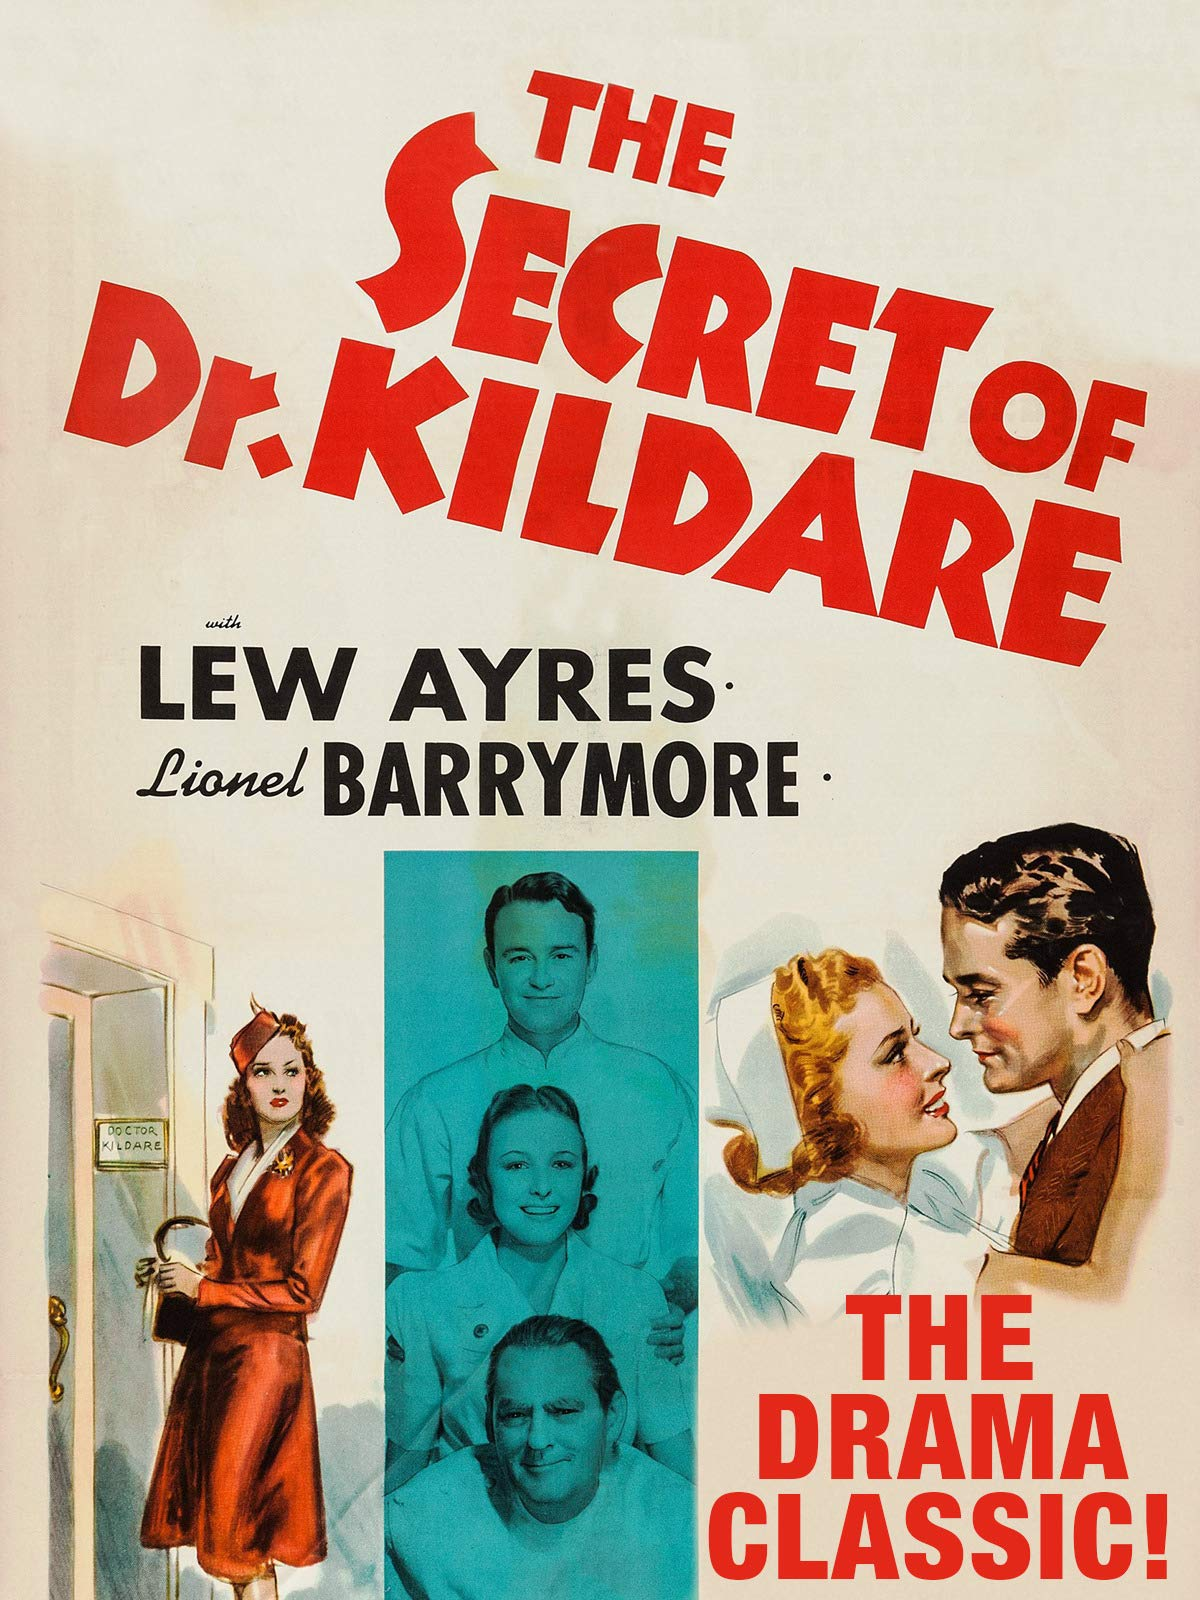 Secret Of Dr. Kildare - Lew Ayres, Lionel Barrymore, The Drama Classic!